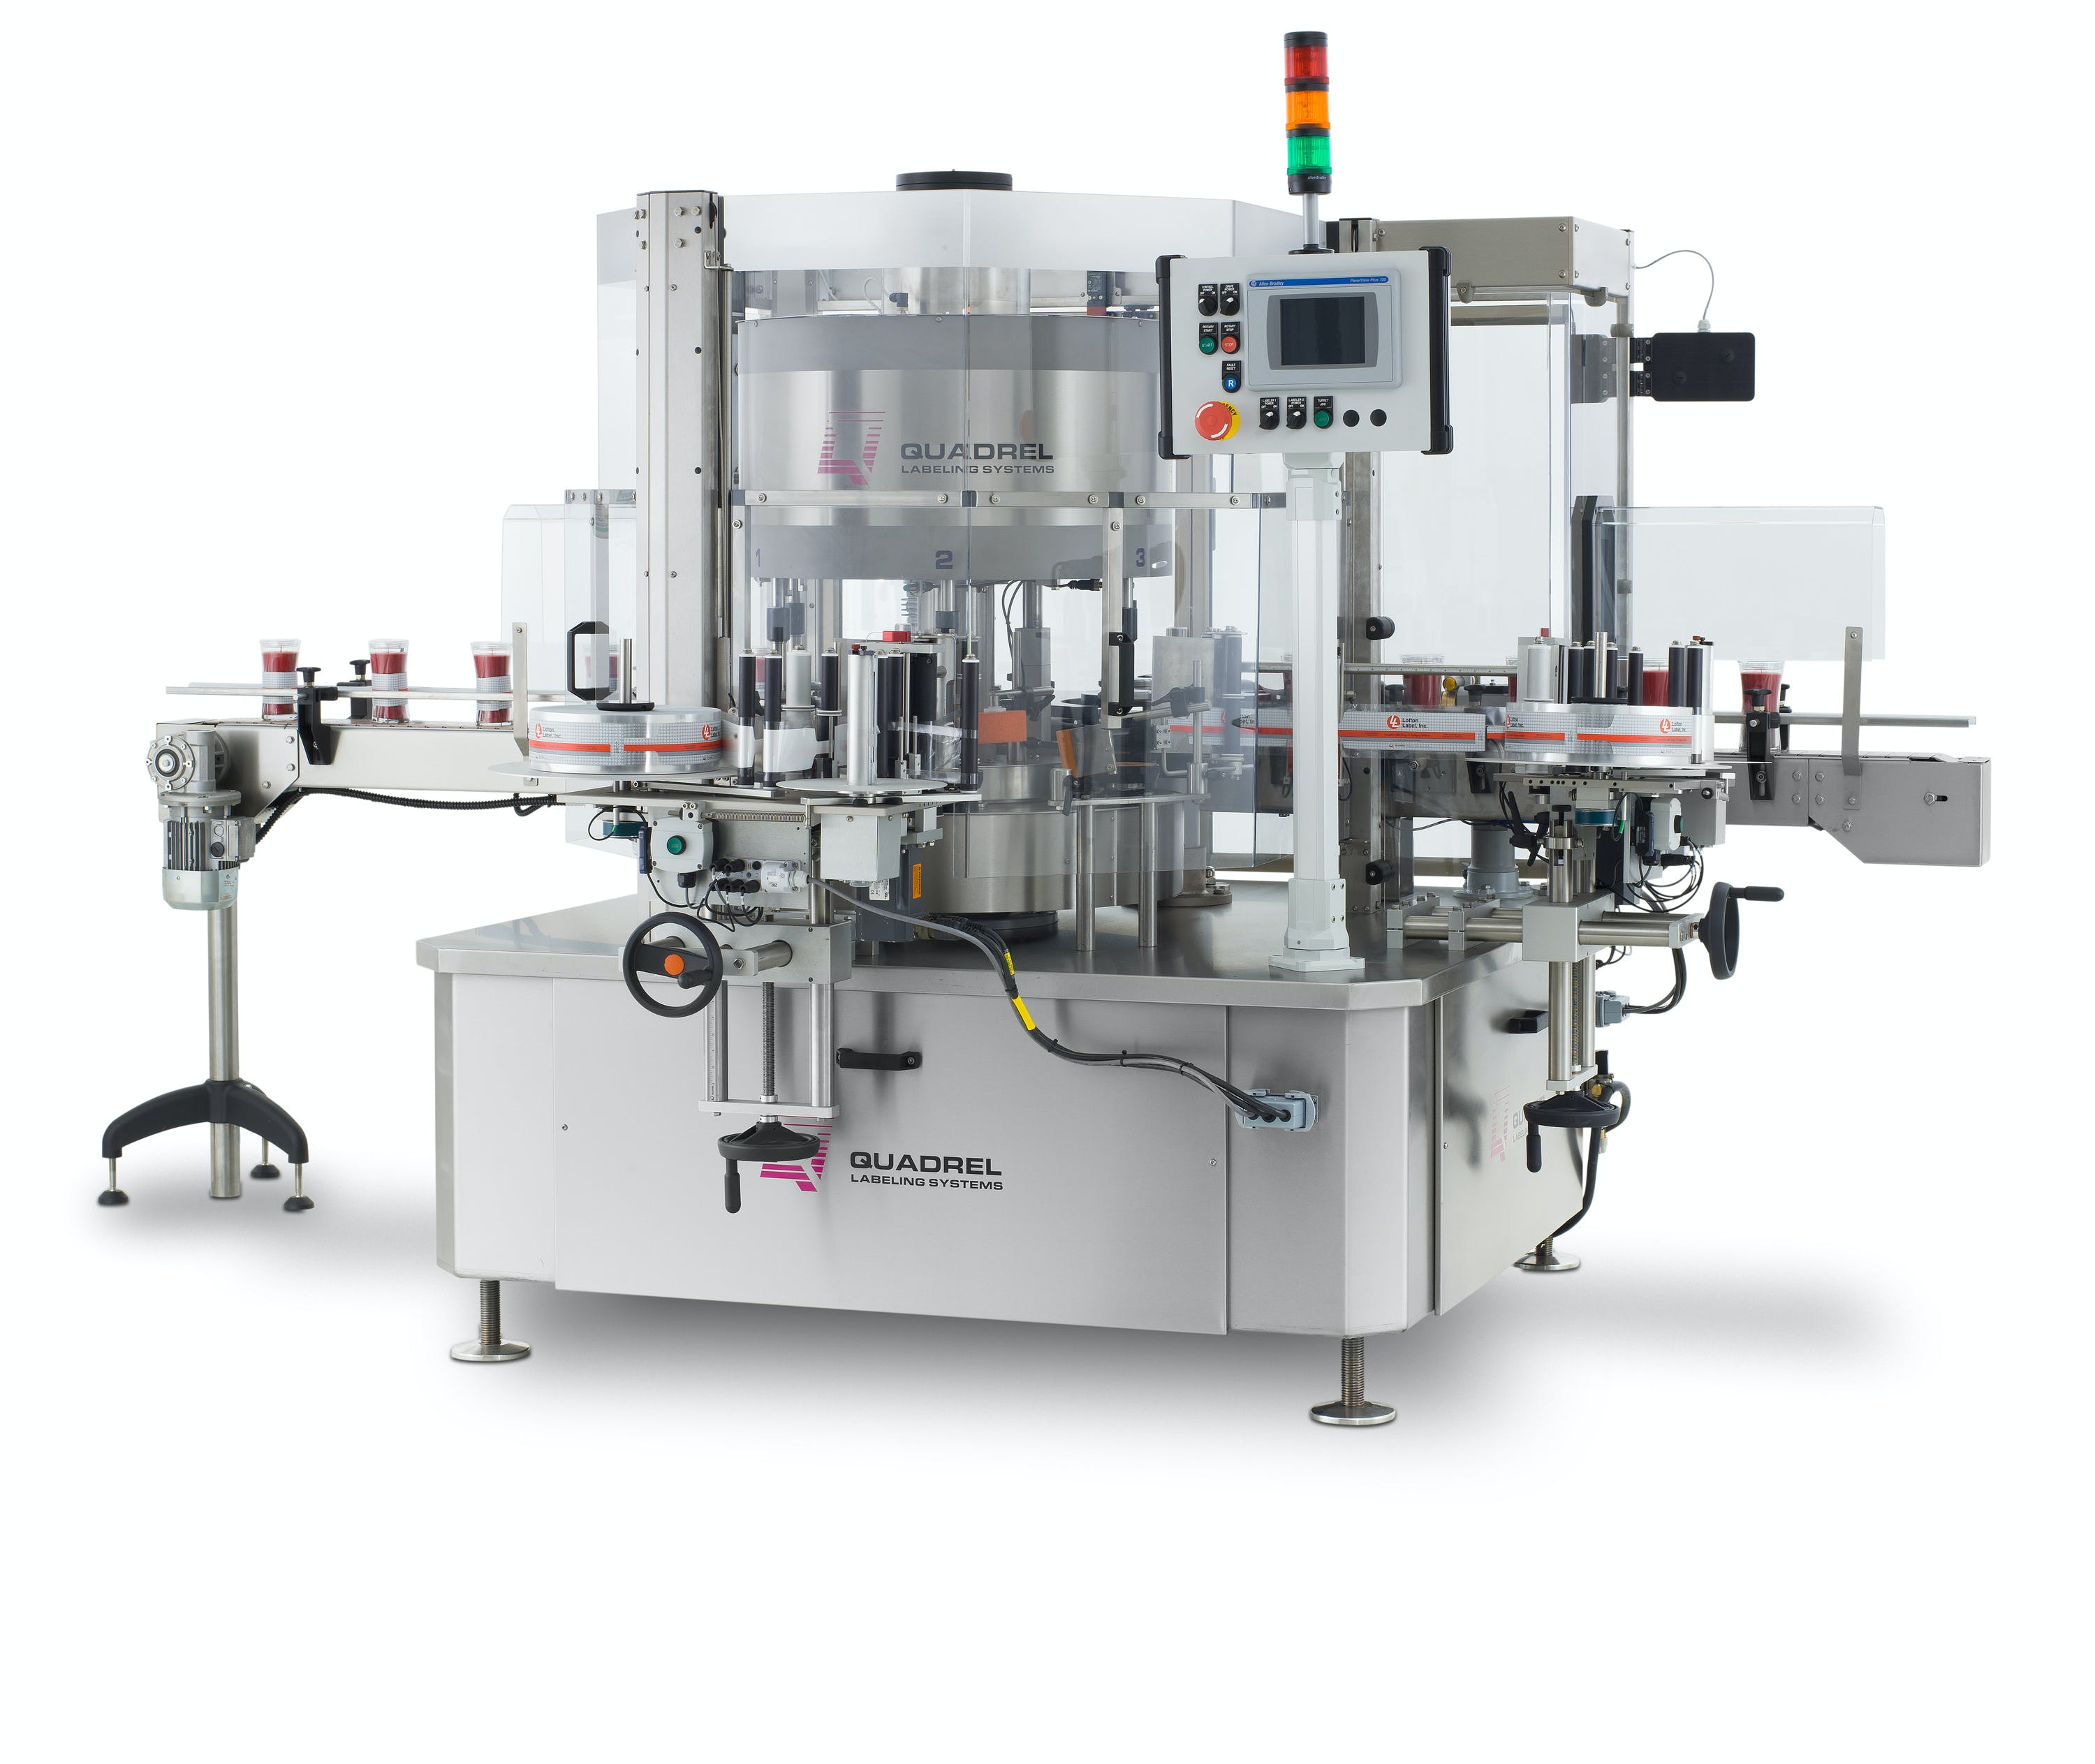 High speed pressure sensitive labeling system Labeling machine sold by BPM SYSTEMS